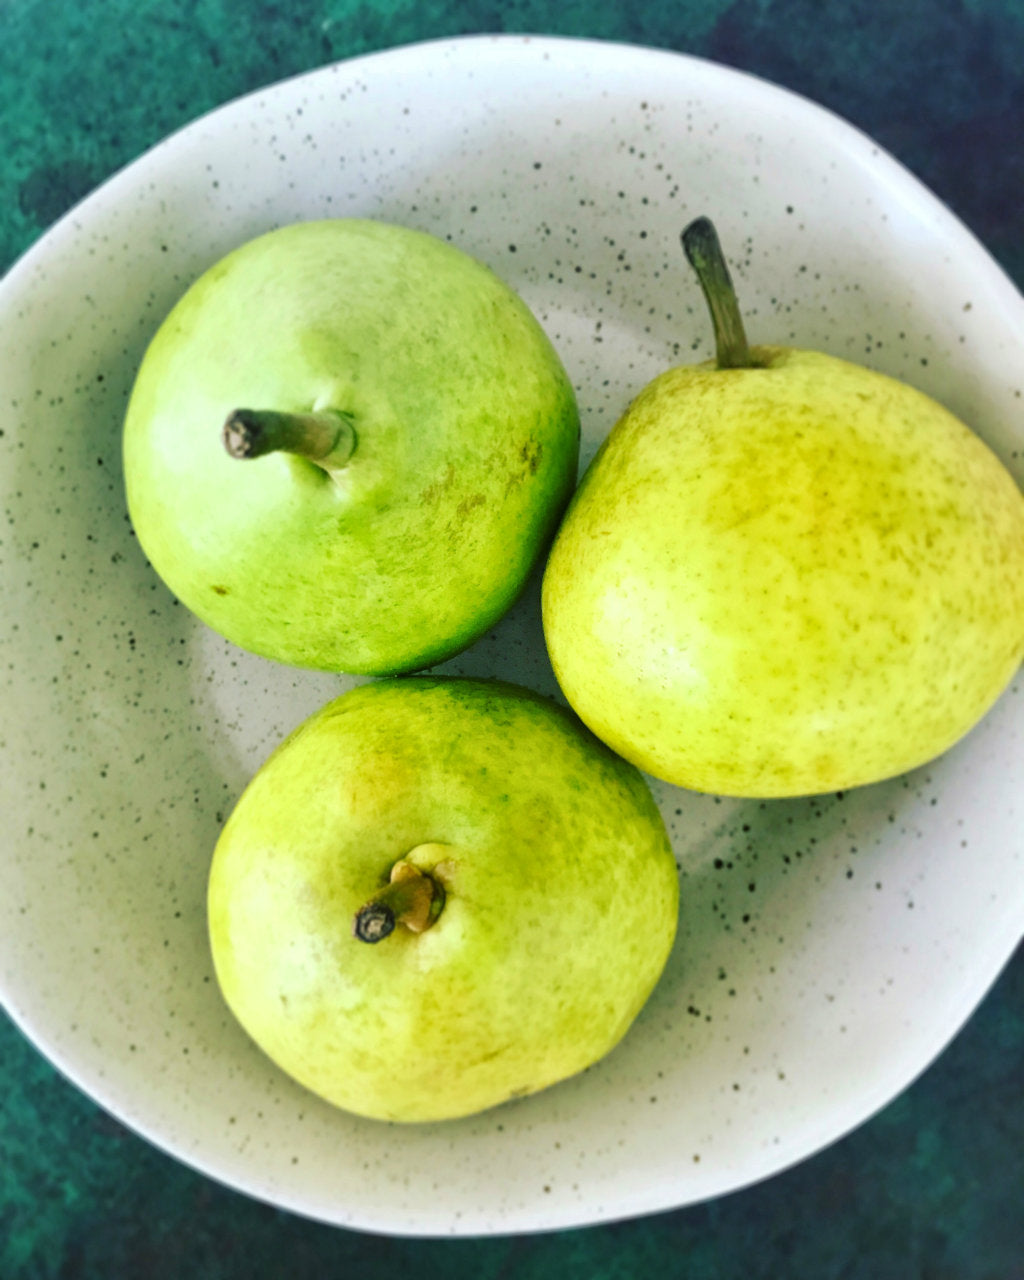 josephine pears - pick of the week